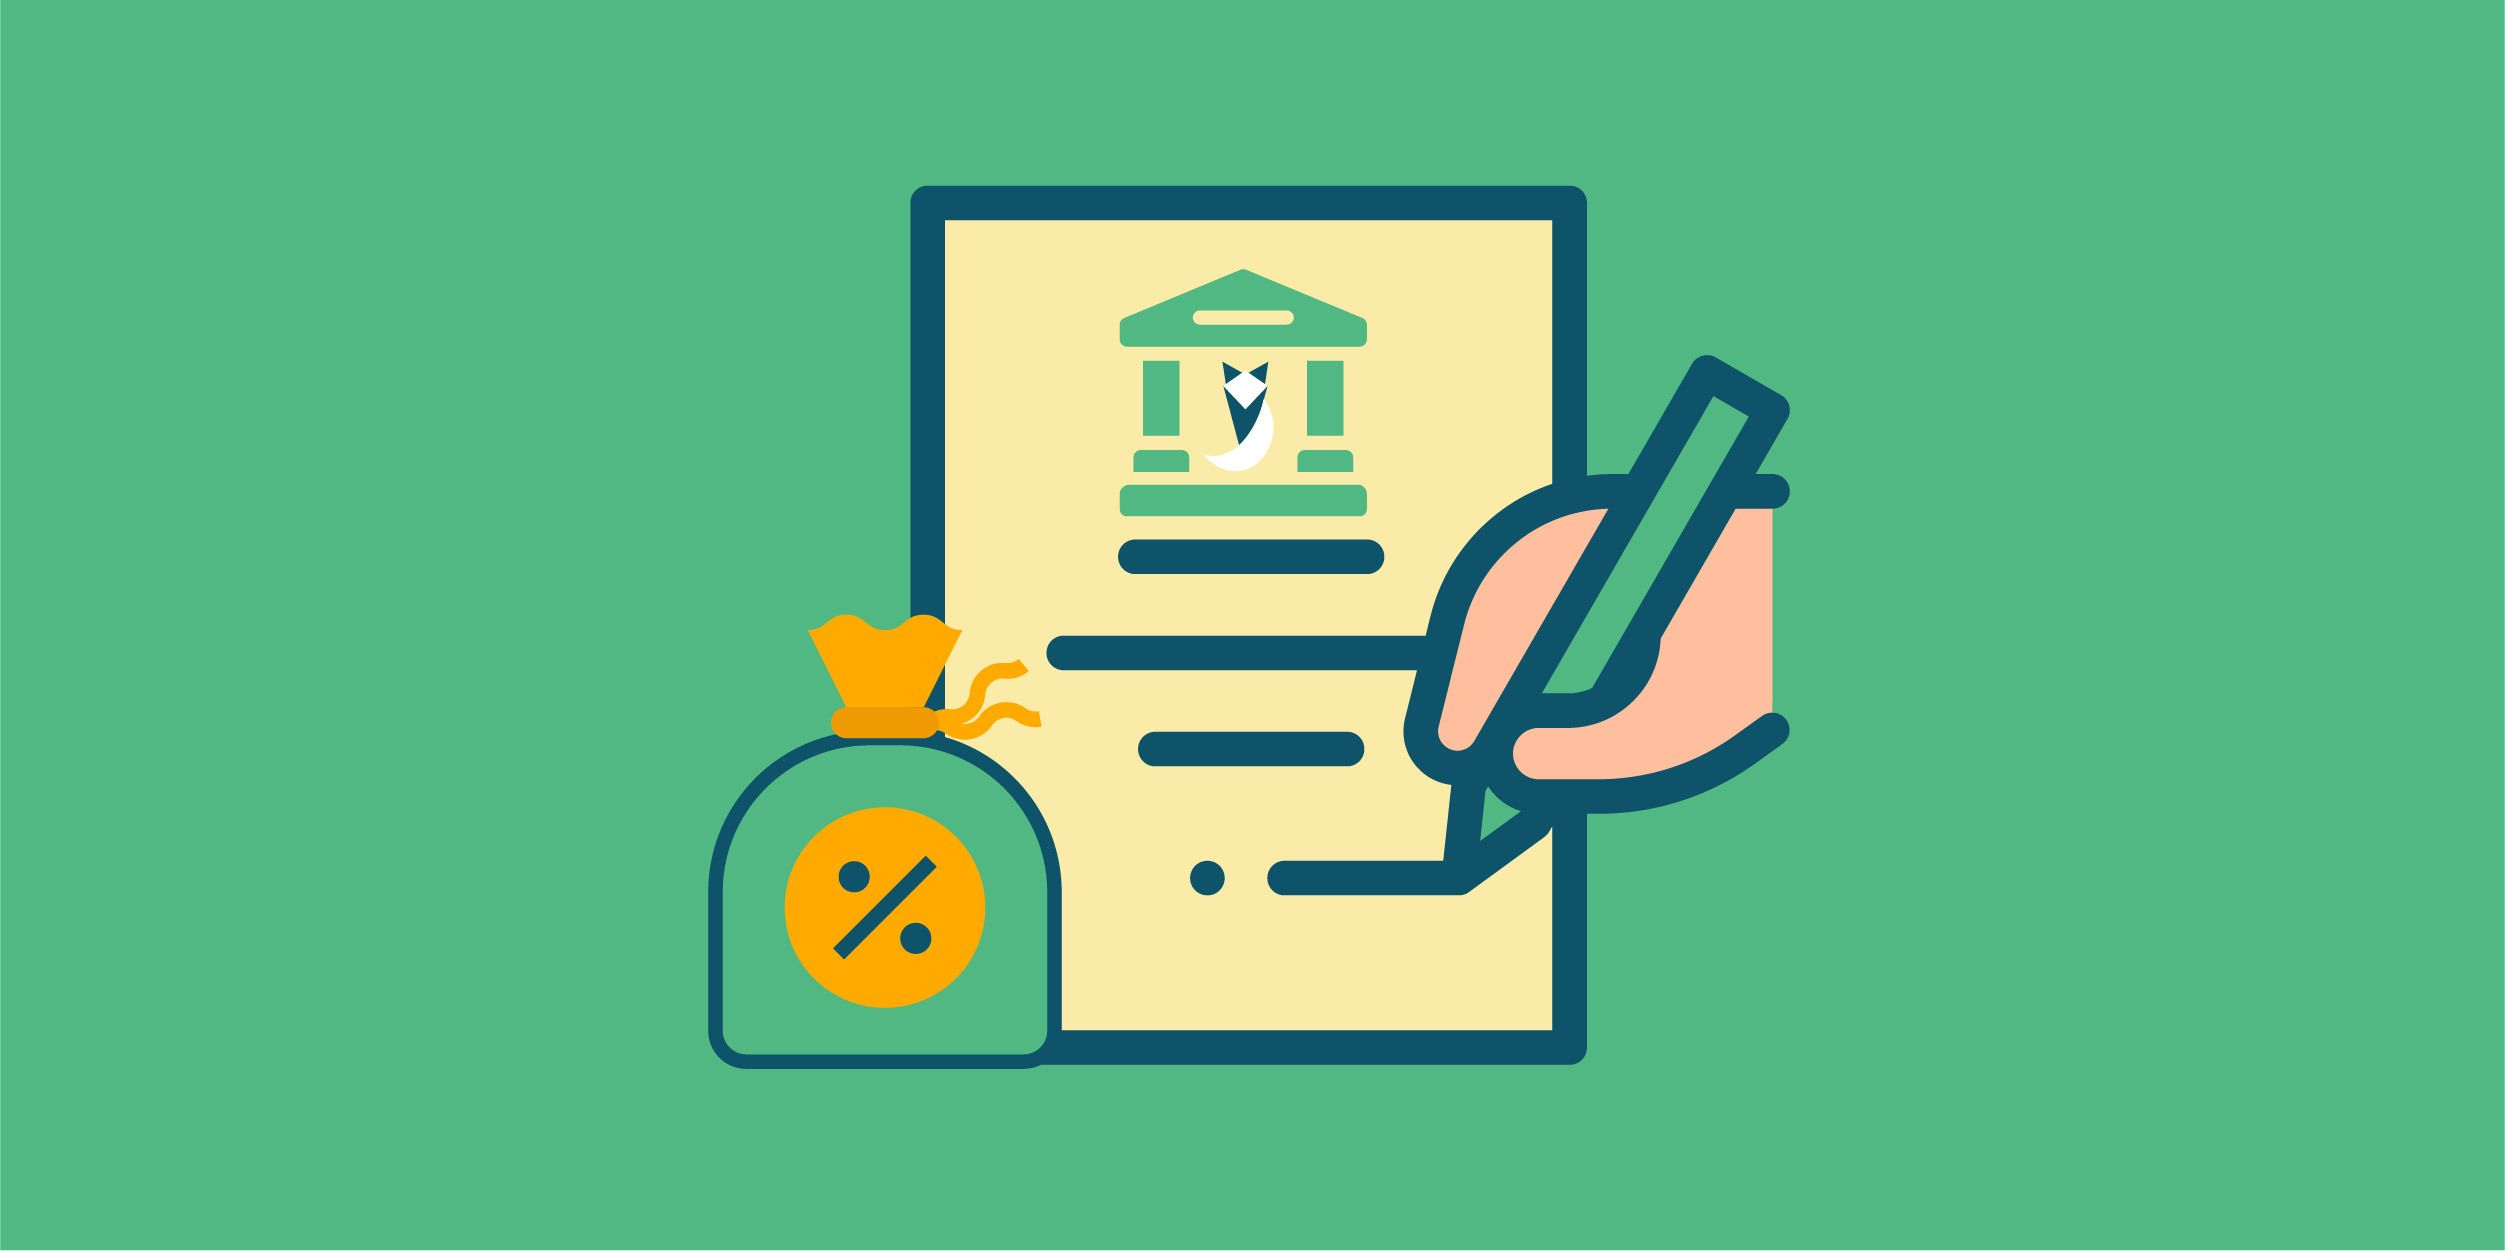 Need to Take Out A Loan? How To Choose The Bank